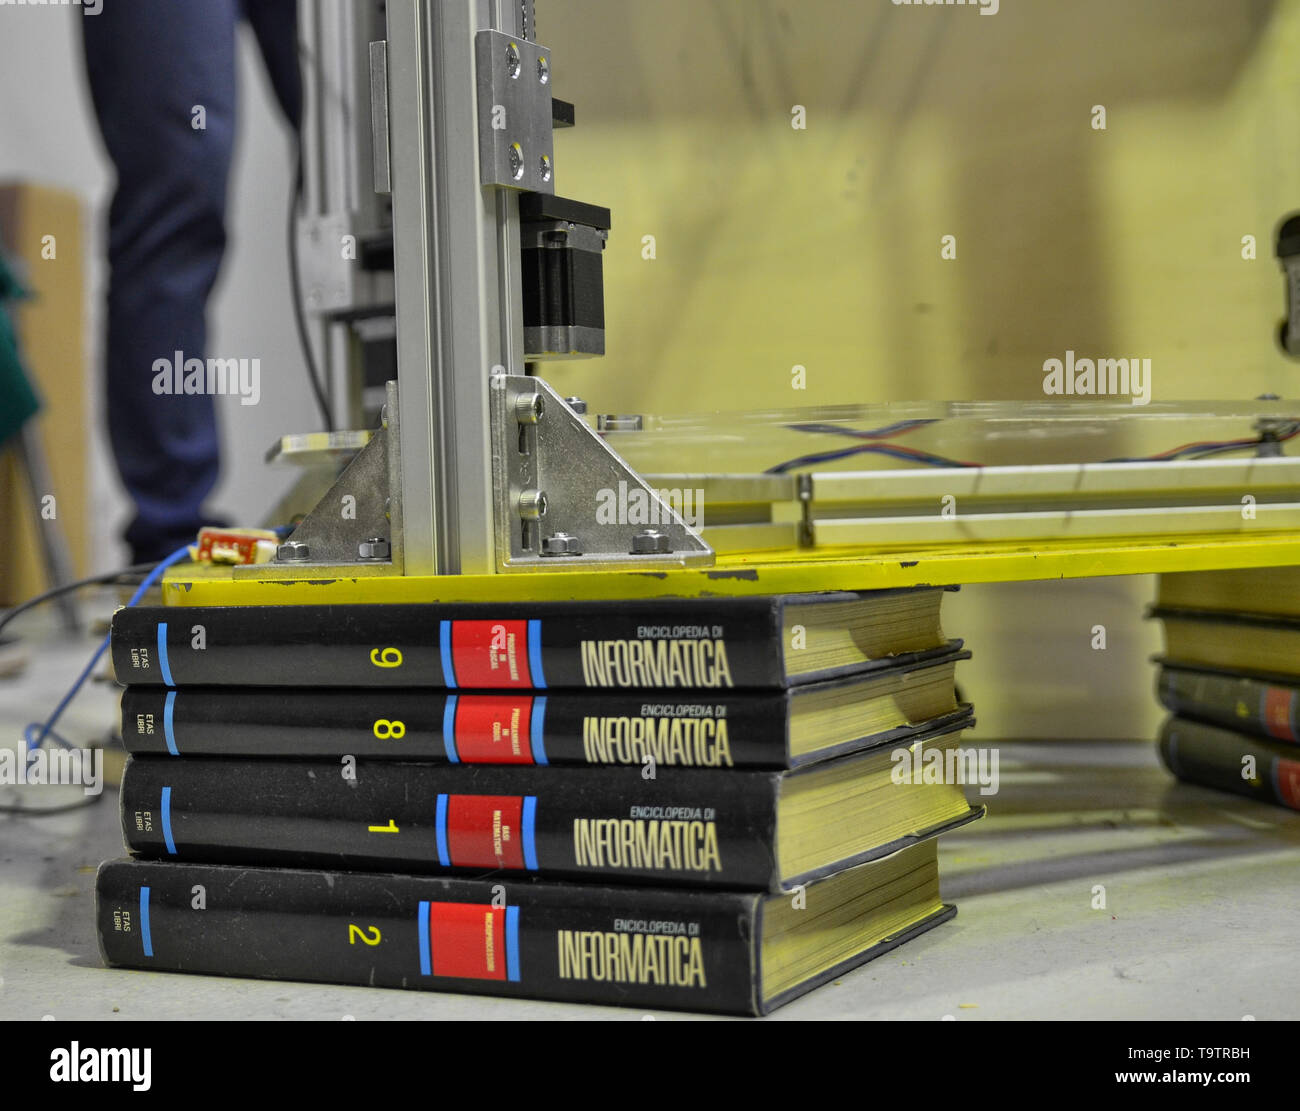 Turin, Piedmont, Italy. 3 June 2018. At the Fablab in Turin a demo with a three-dimensional printer at work. In the details of the old computer techno - Stock Image